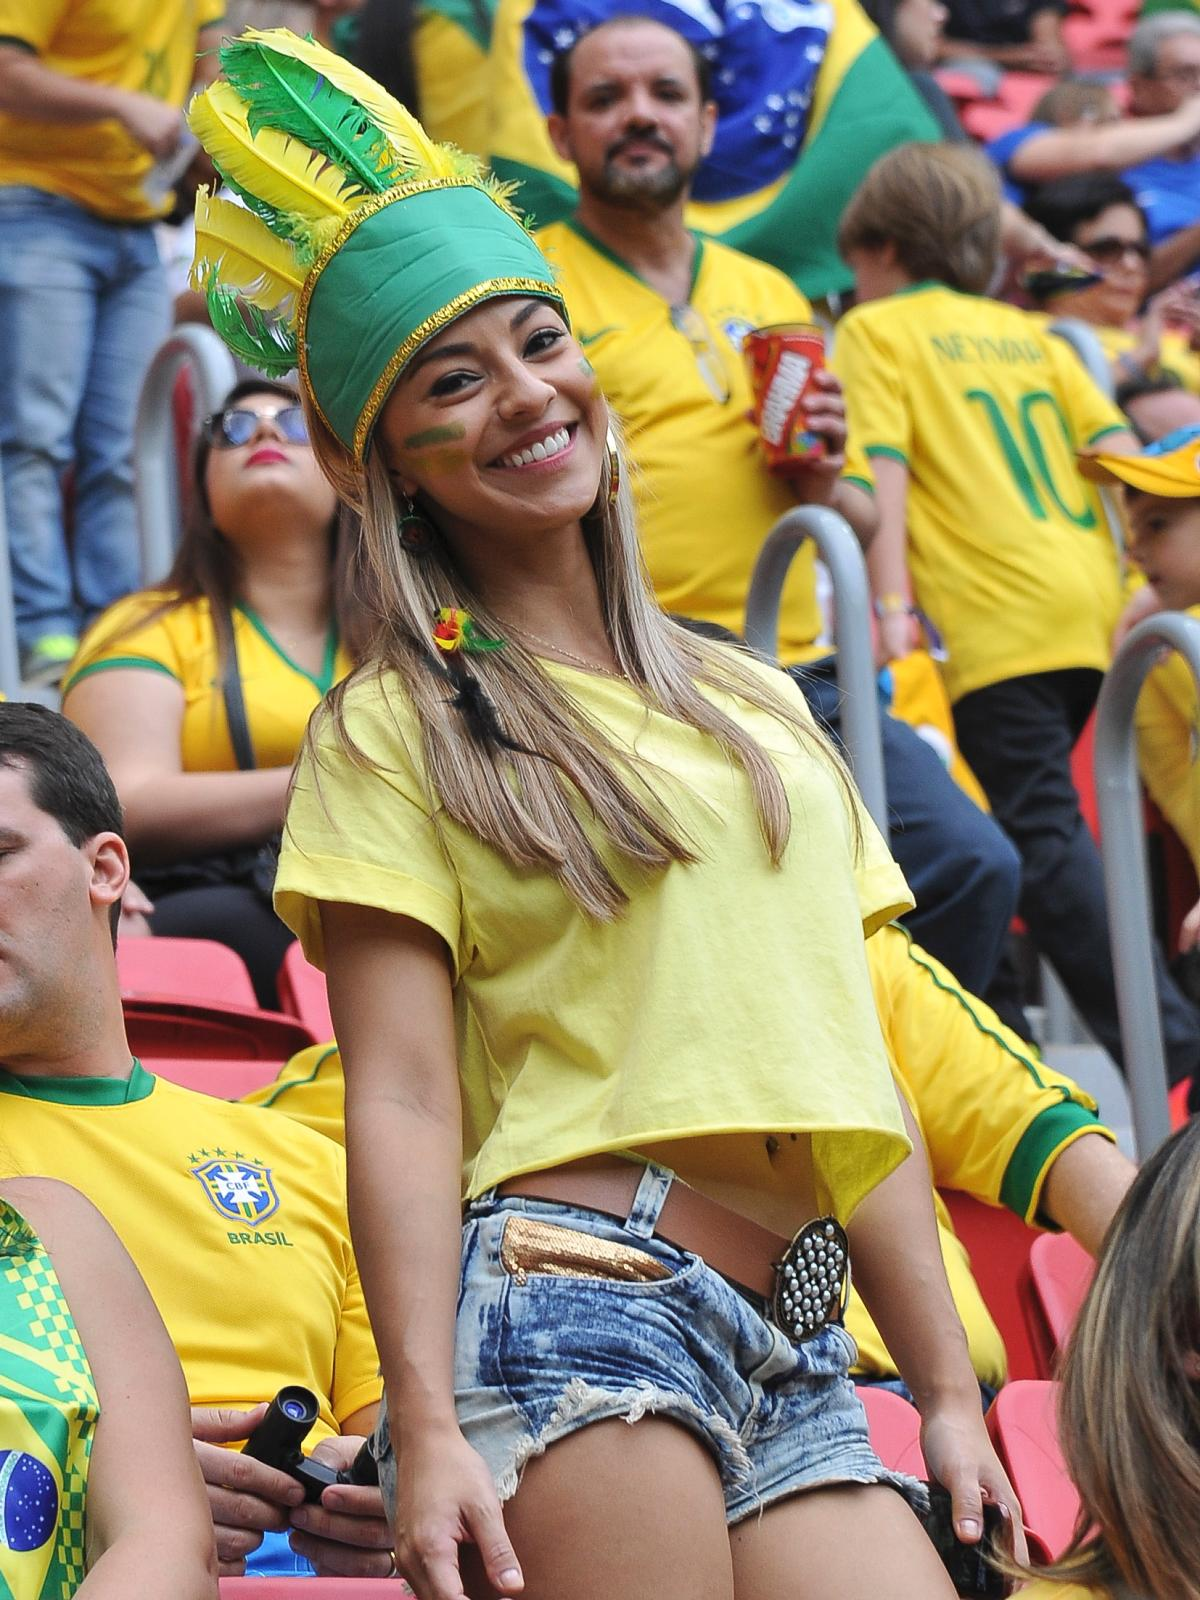 25 hot brazil fan 2 - hottest female fans 2014 world cup